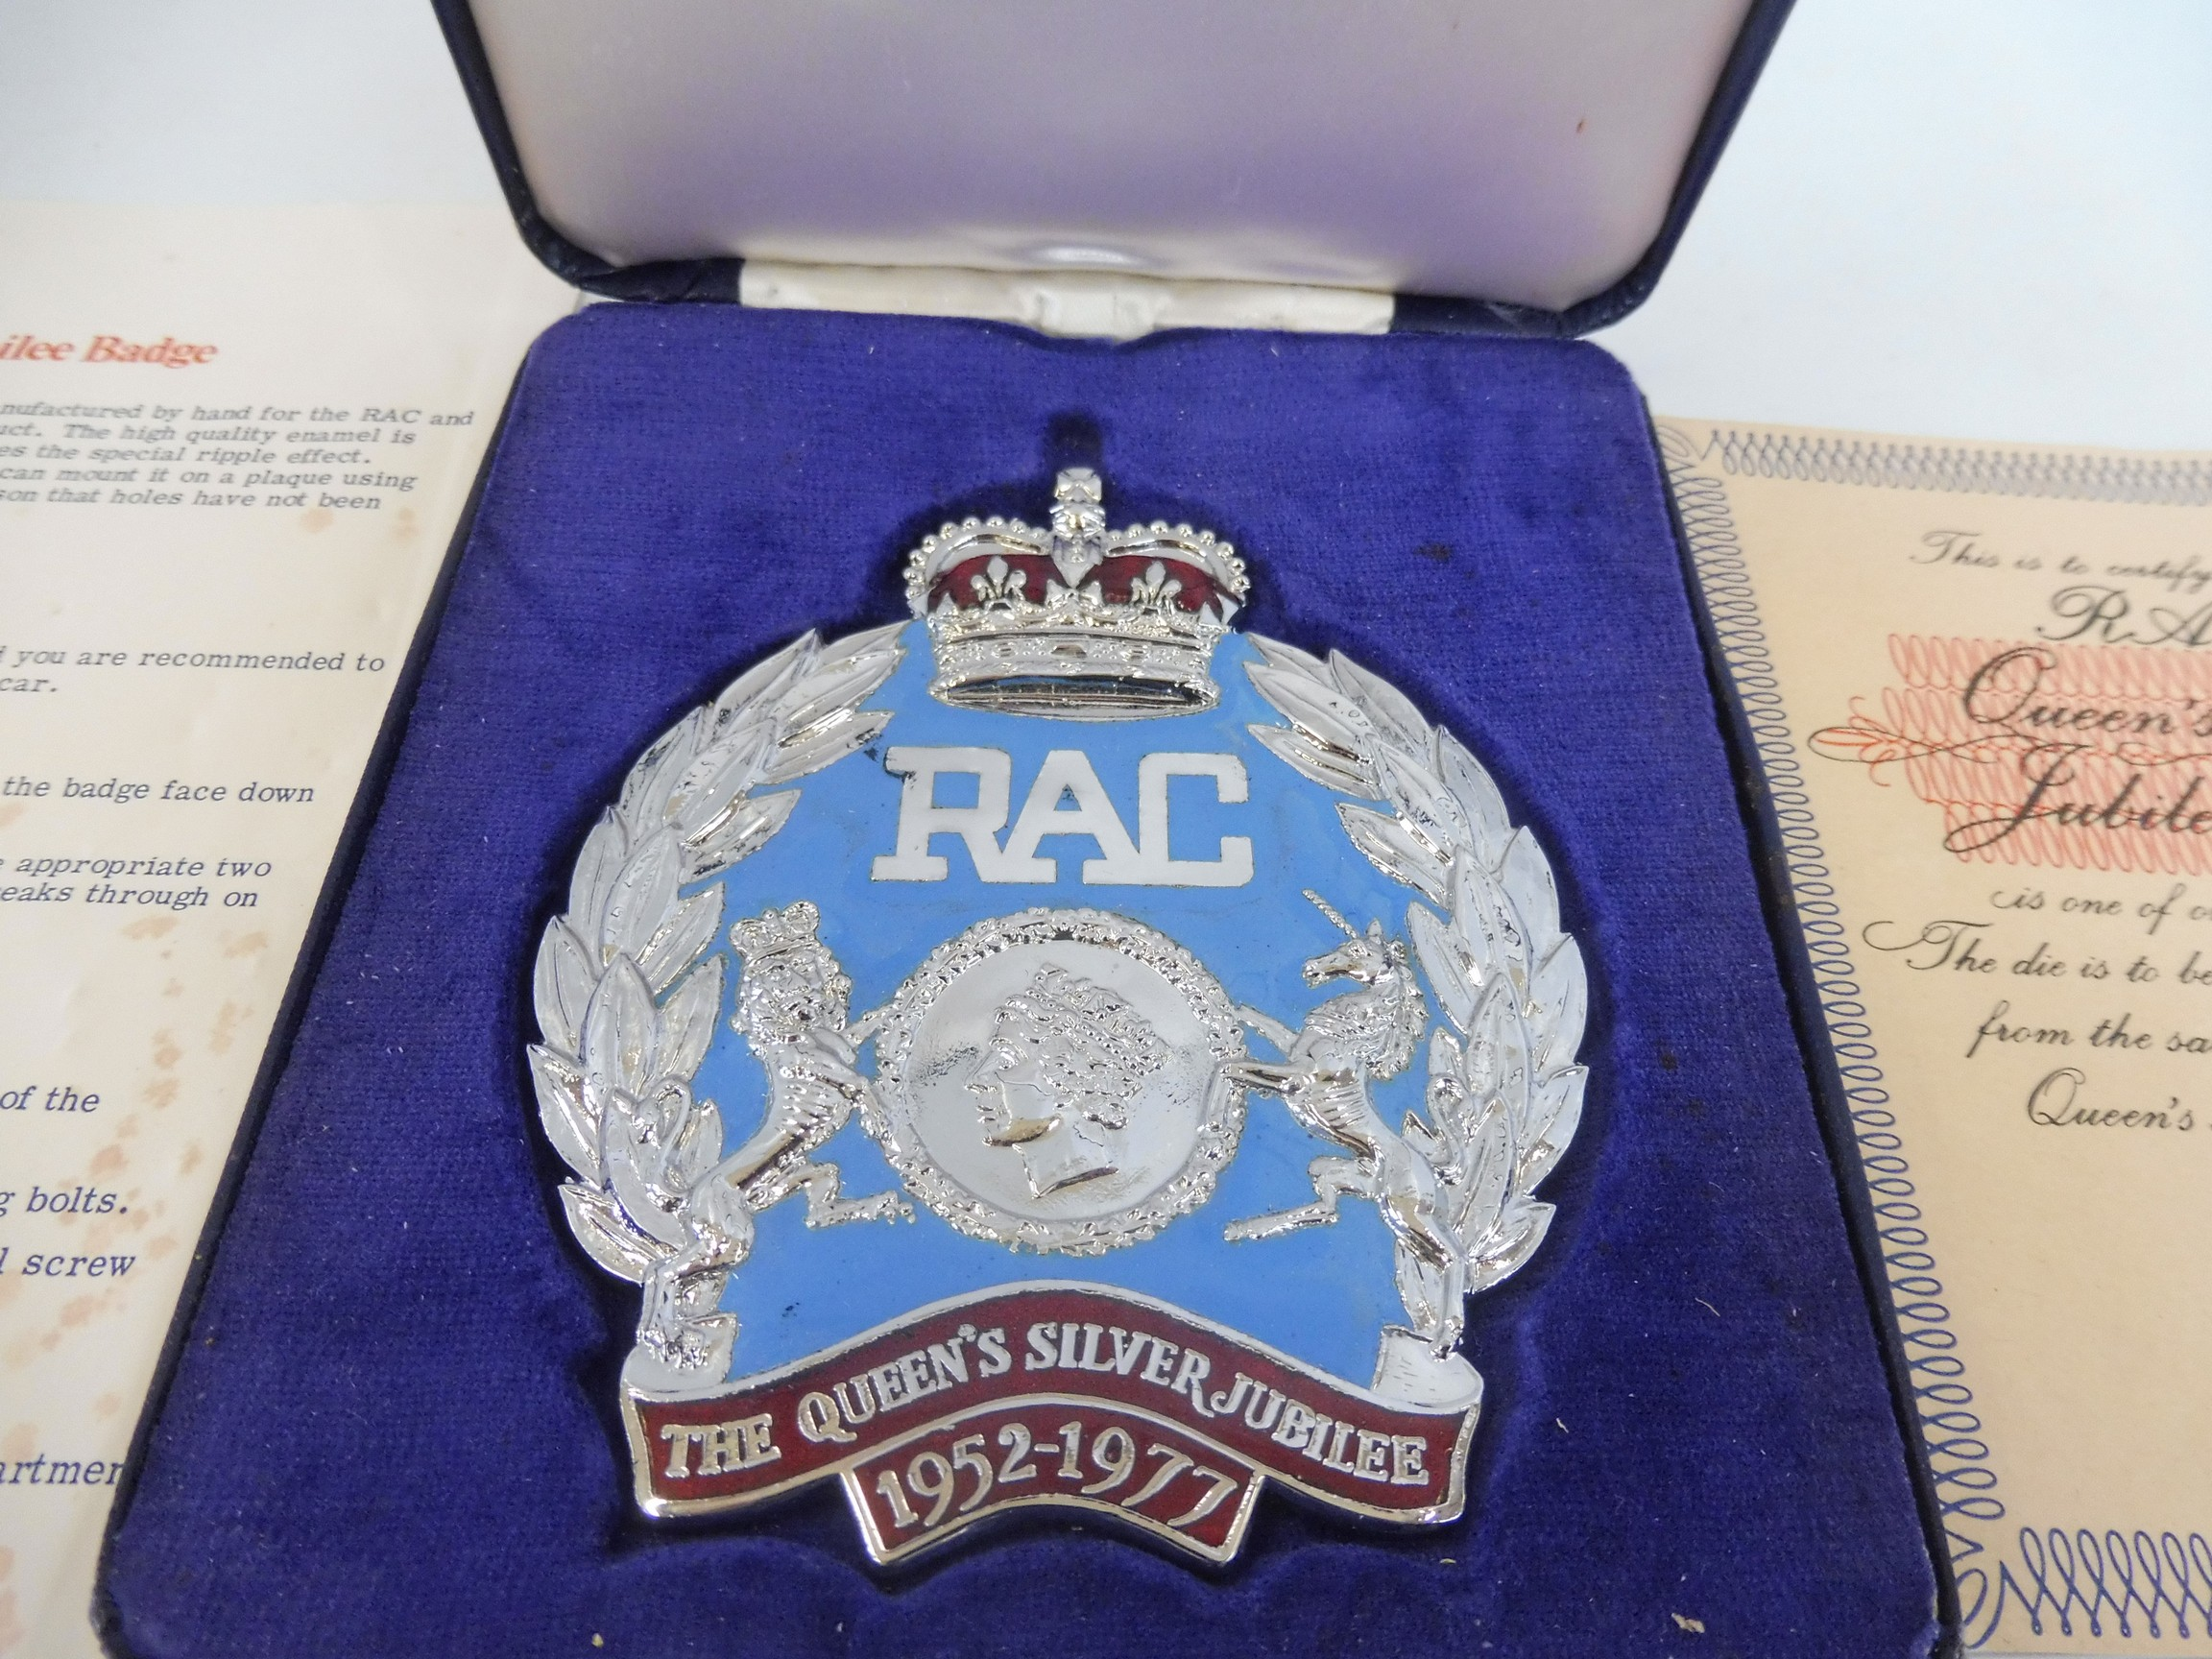 A cased RAC Queen's Silver Jubilee badge, only produced in 1977, no. 537/1,000, with certificate, - Image 2 of 4